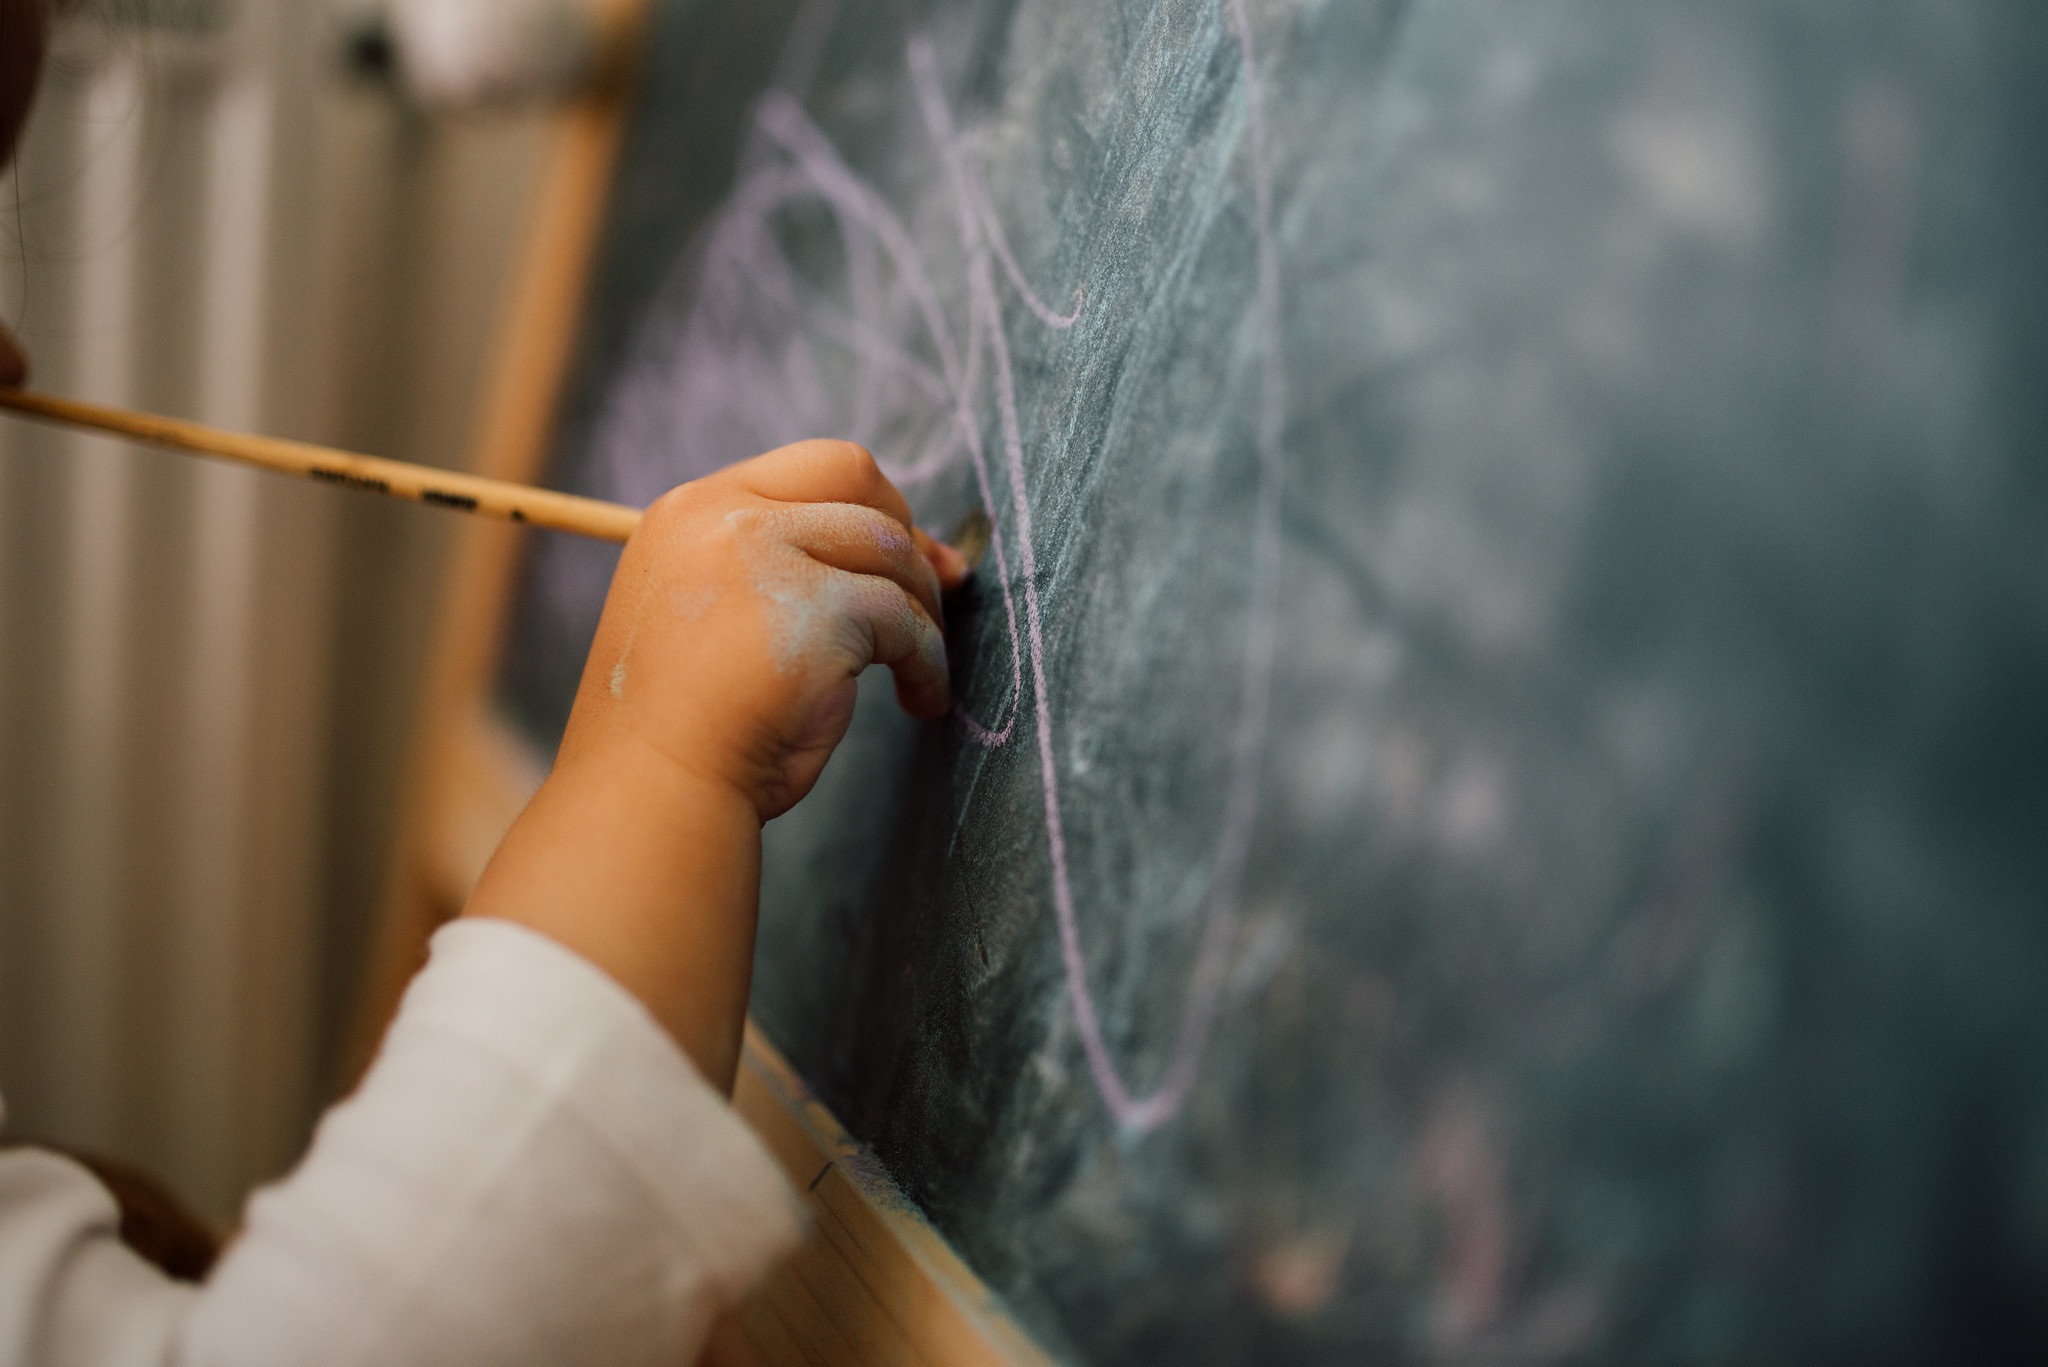 Child scribbling on a chalkboard